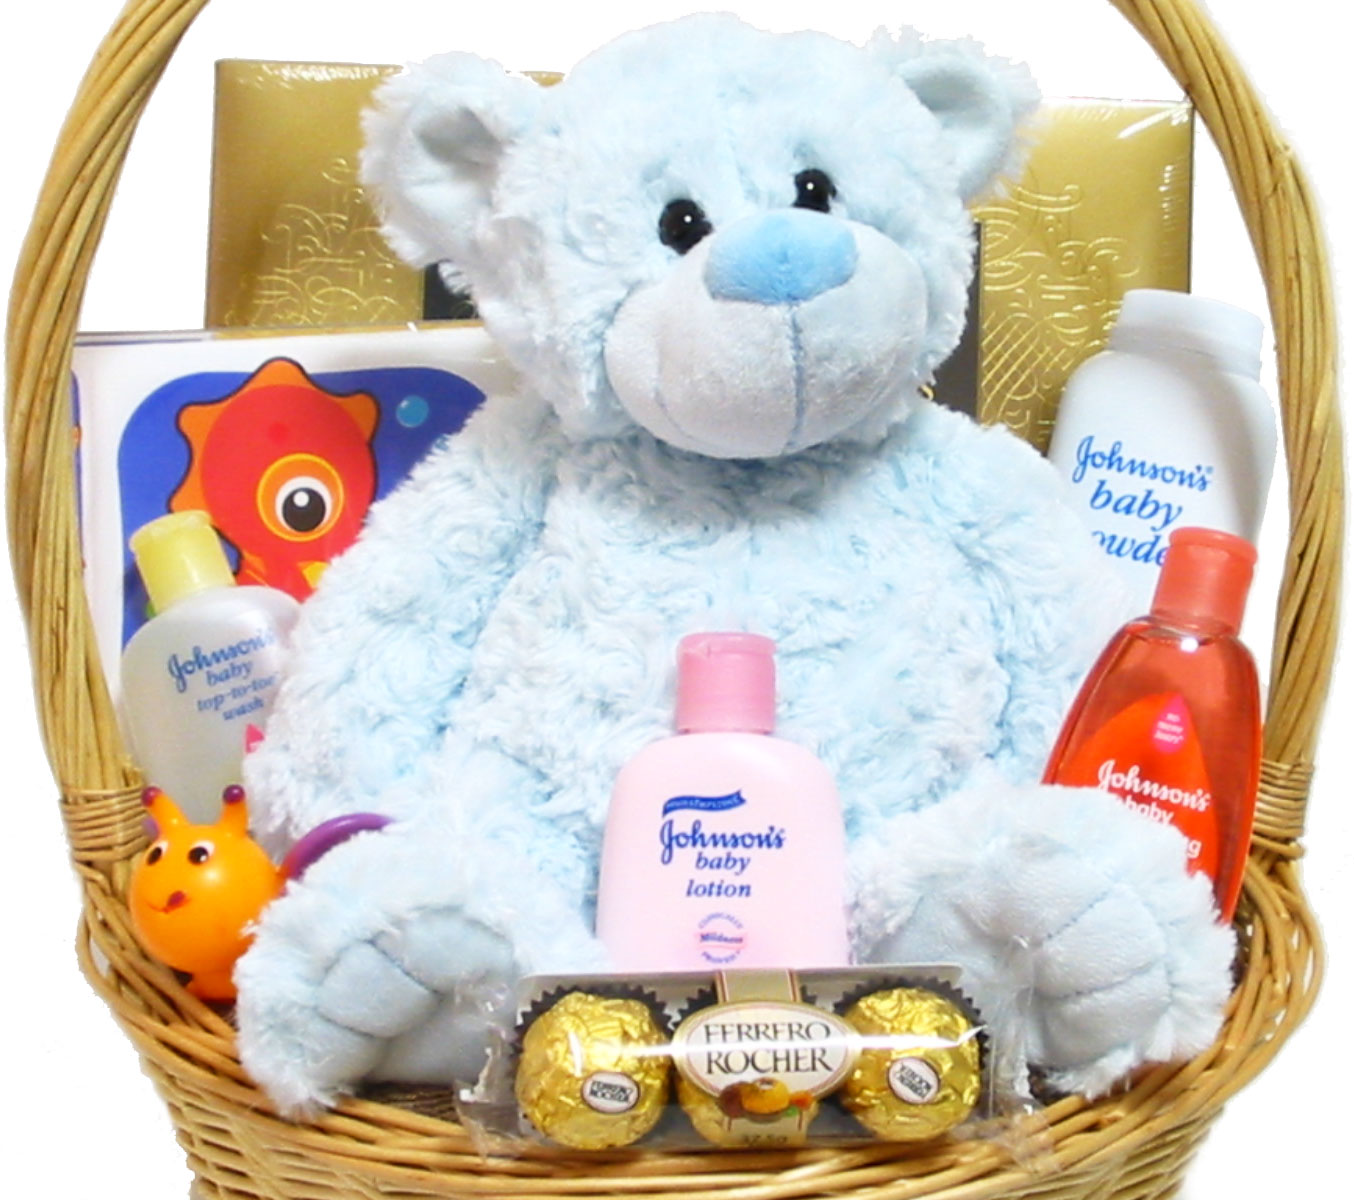 Baby Gift Basket Same Day Delivery : Baby baskets perth gift delivery same day